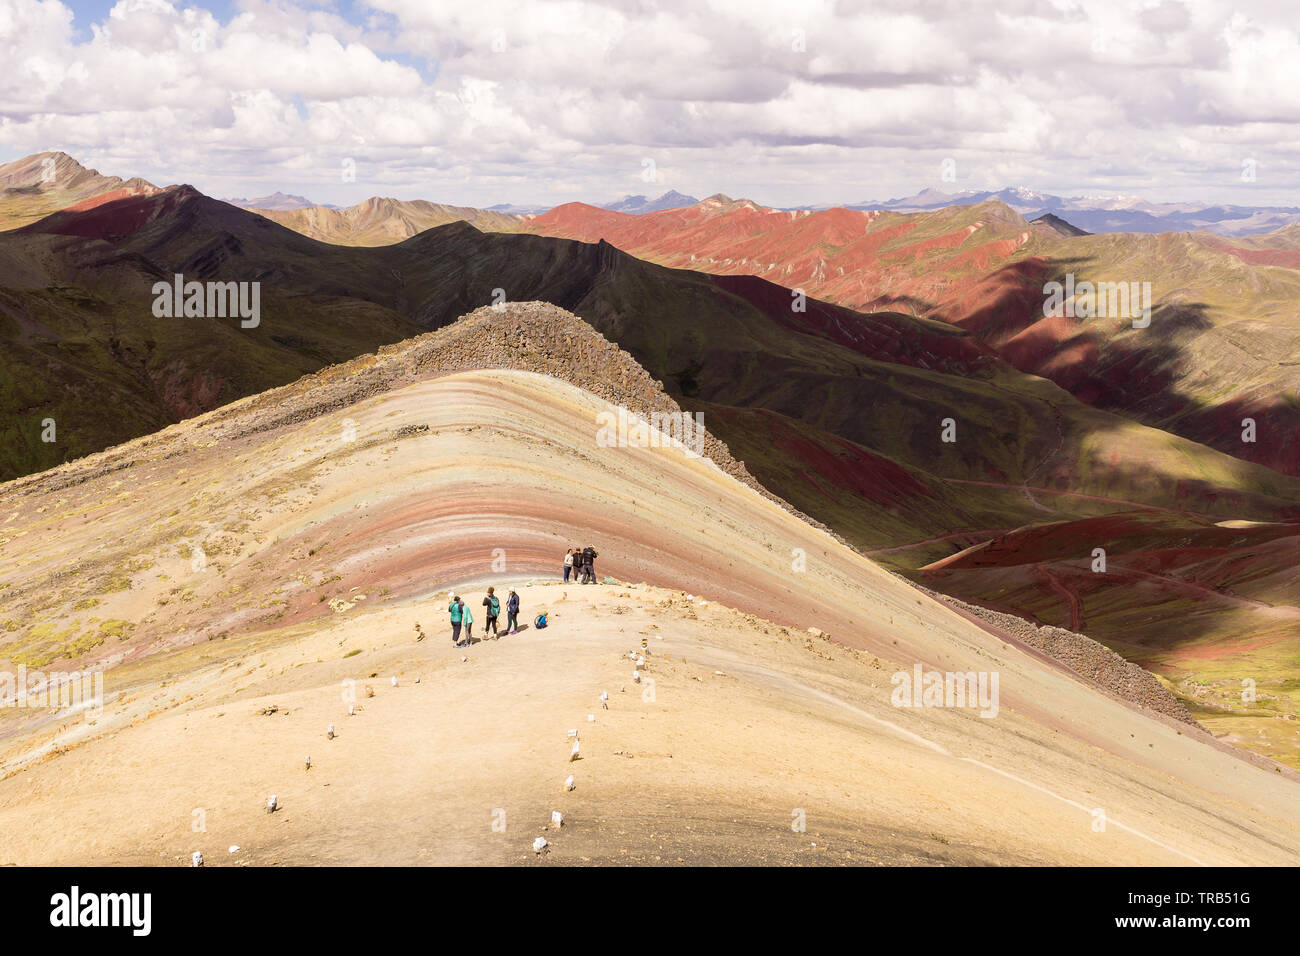 Page 3 Rainbow Mountain High Resolution Stock Photography And Images Alamy